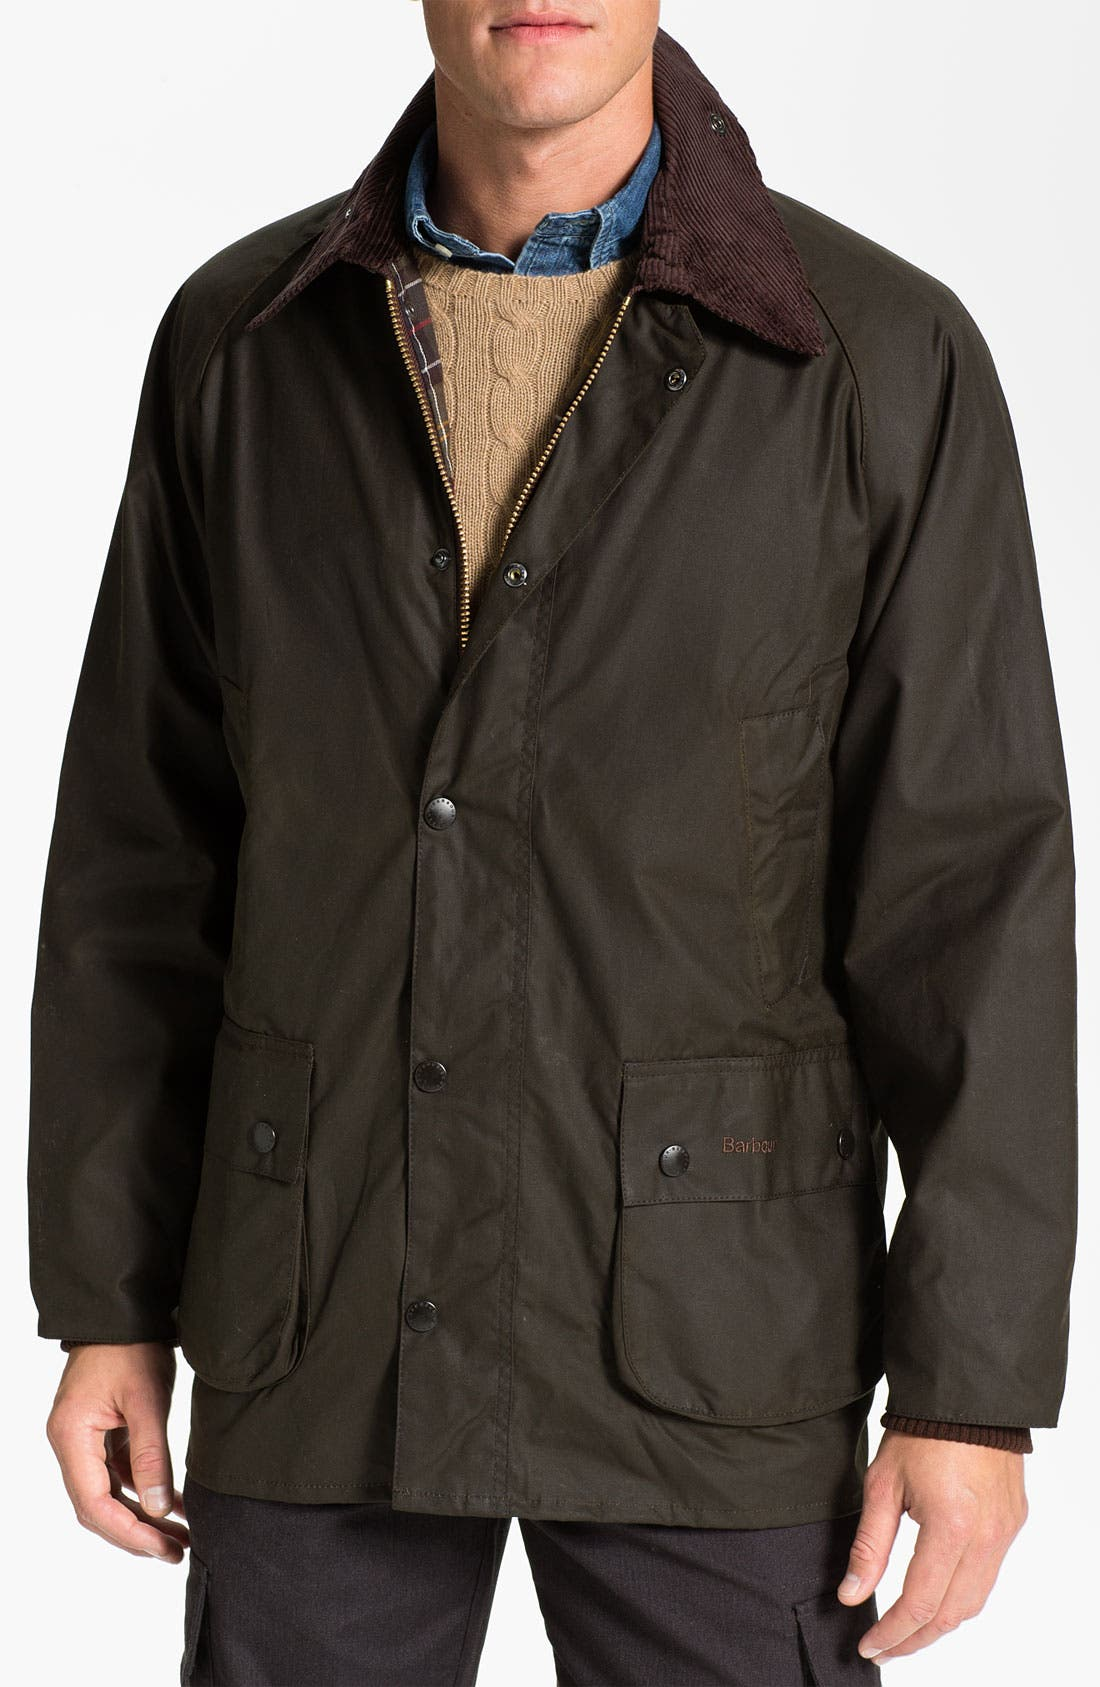 'Bedale' Relaxed Fit Waterproof Waxed Cotton Jacket,                             Main thumbnail 1, color,                             301